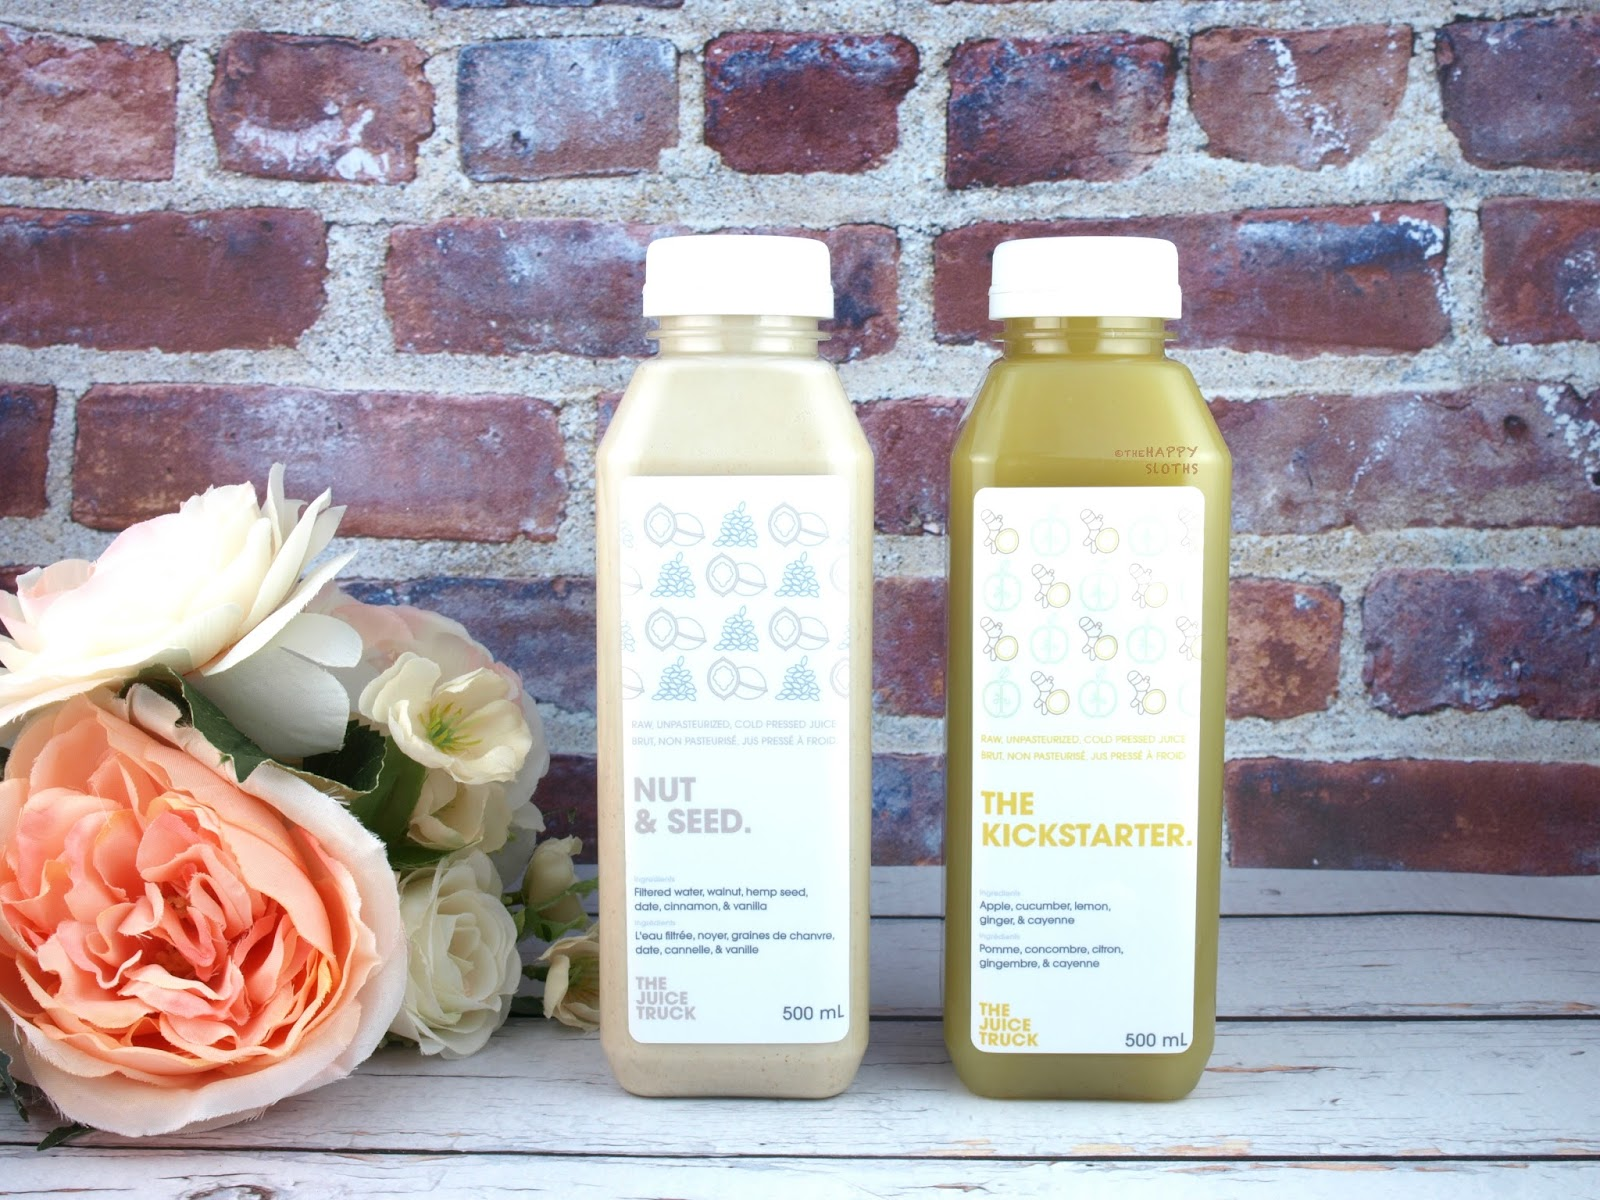 The Juice Truck Juice Cleanse Review | Nut Seed & The Kickstarter